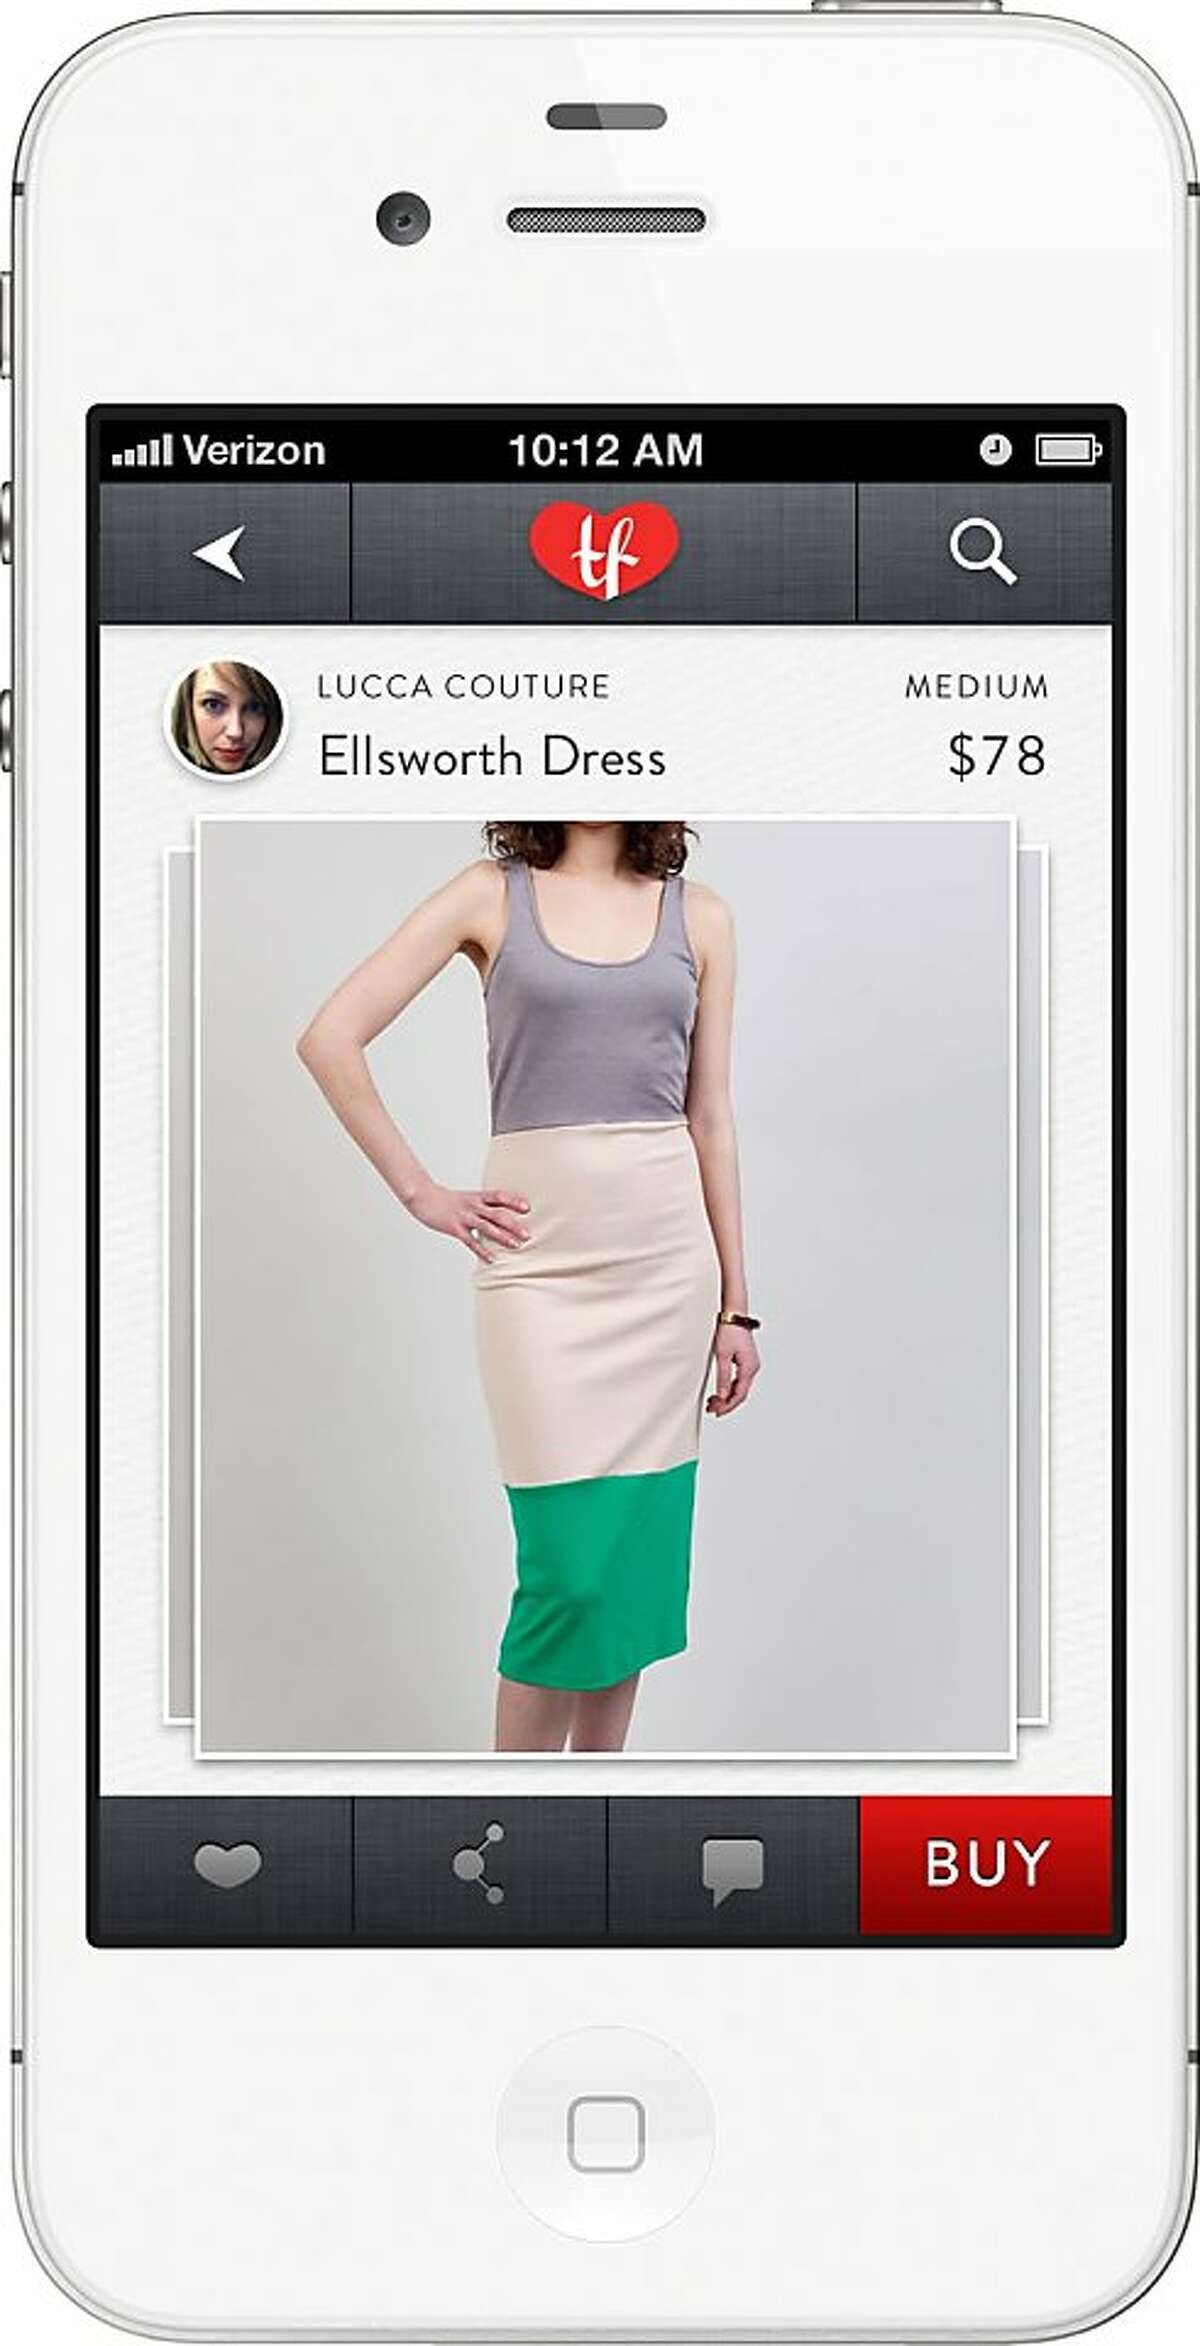 San Francisco's Threadflip is a new mobile app that helps people list their clothes and accessories for sale, like eBay.